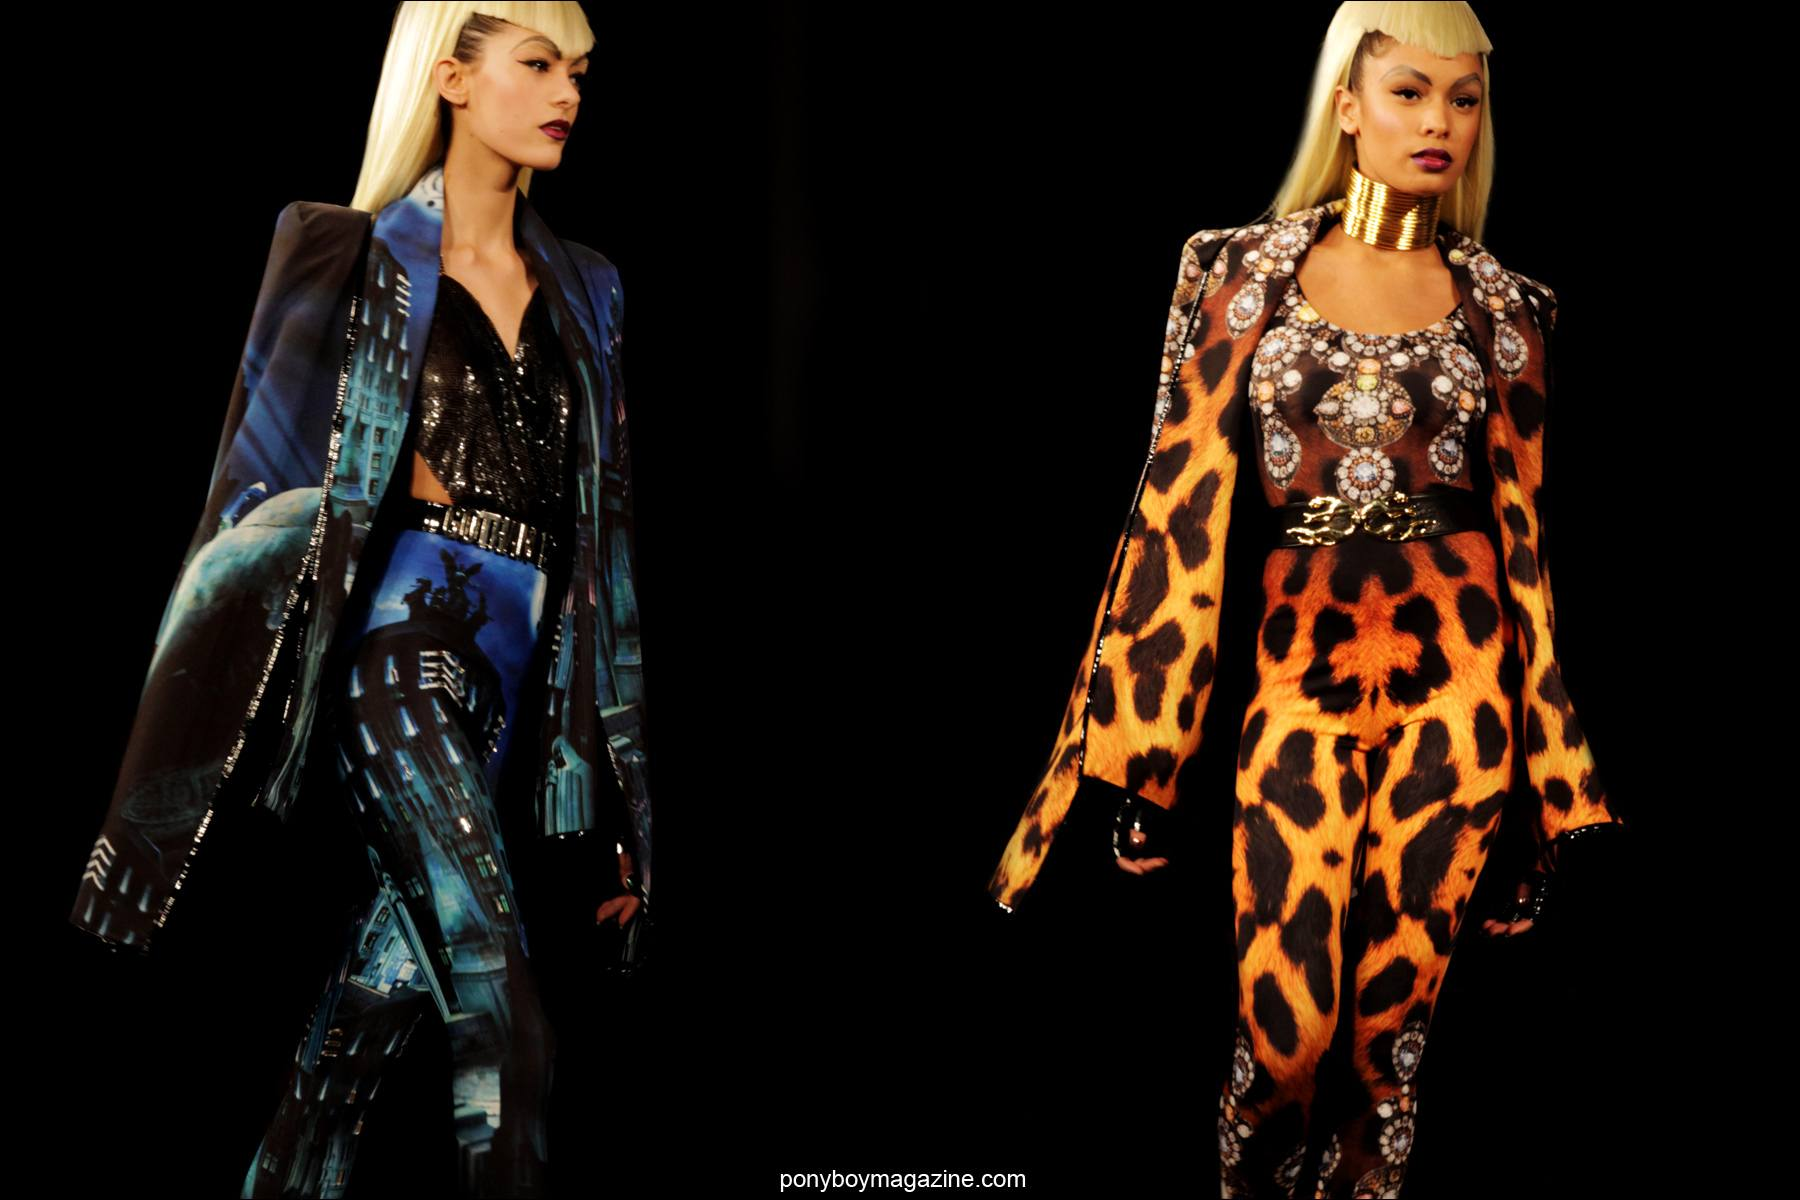 Elaborate prints on the runway at The Blonds A/W 2014 presentation at Milk Studios in New York City. Photographed by Alexander Thompson for Ponyboy Magazine.